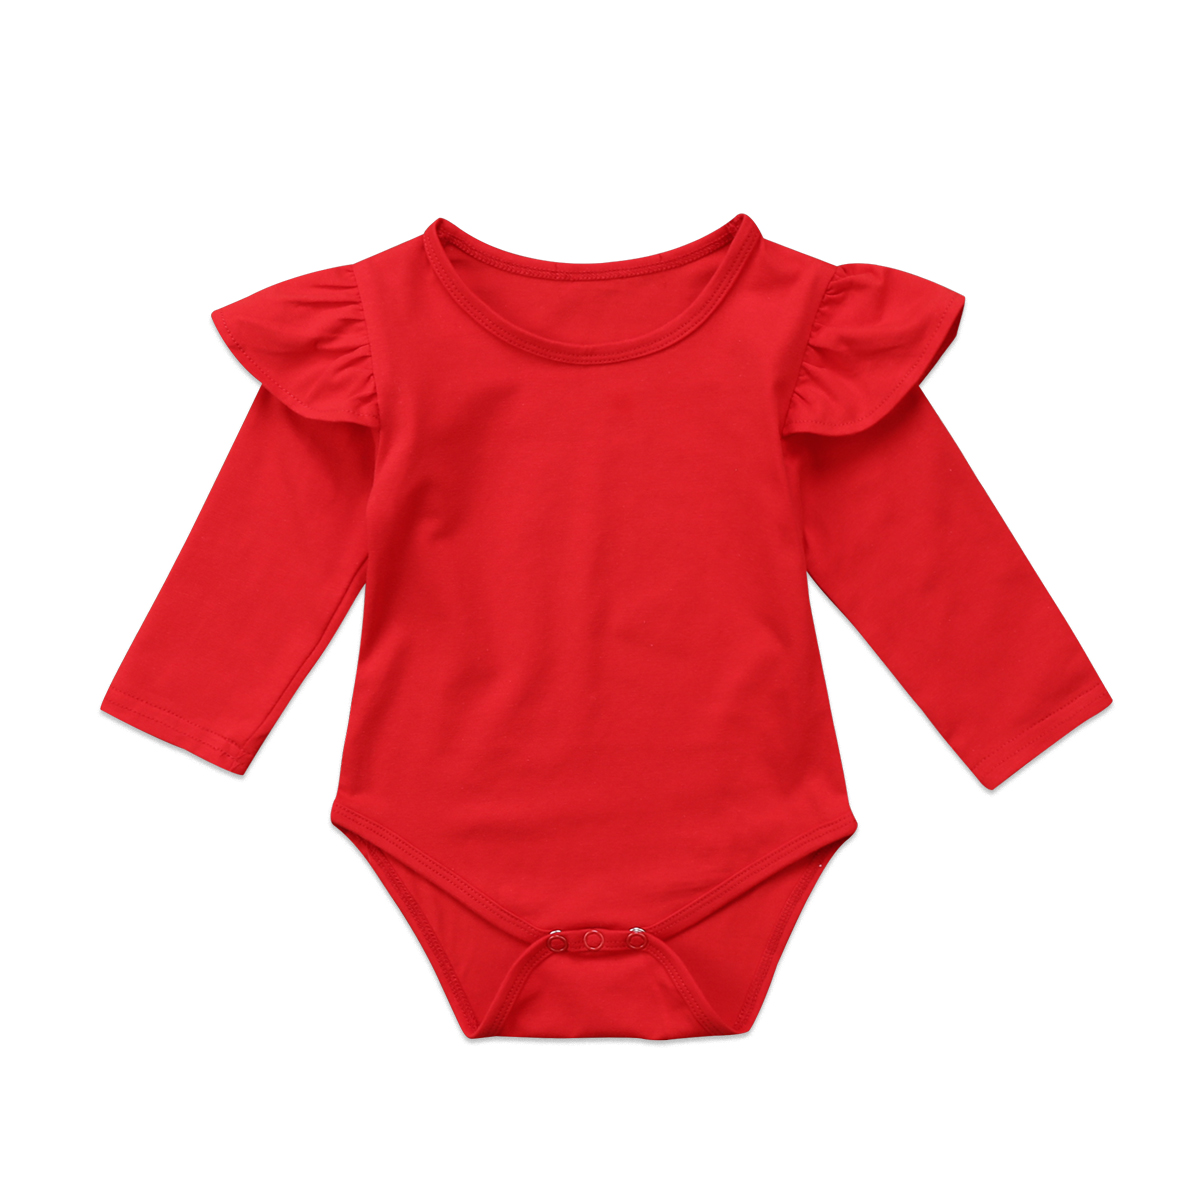 2017 Hot Christmas baby girls romper Newborn Kid Baby Girls Long Sleeve Red Romper  Jumpsuit Outfits Xmas Clothes